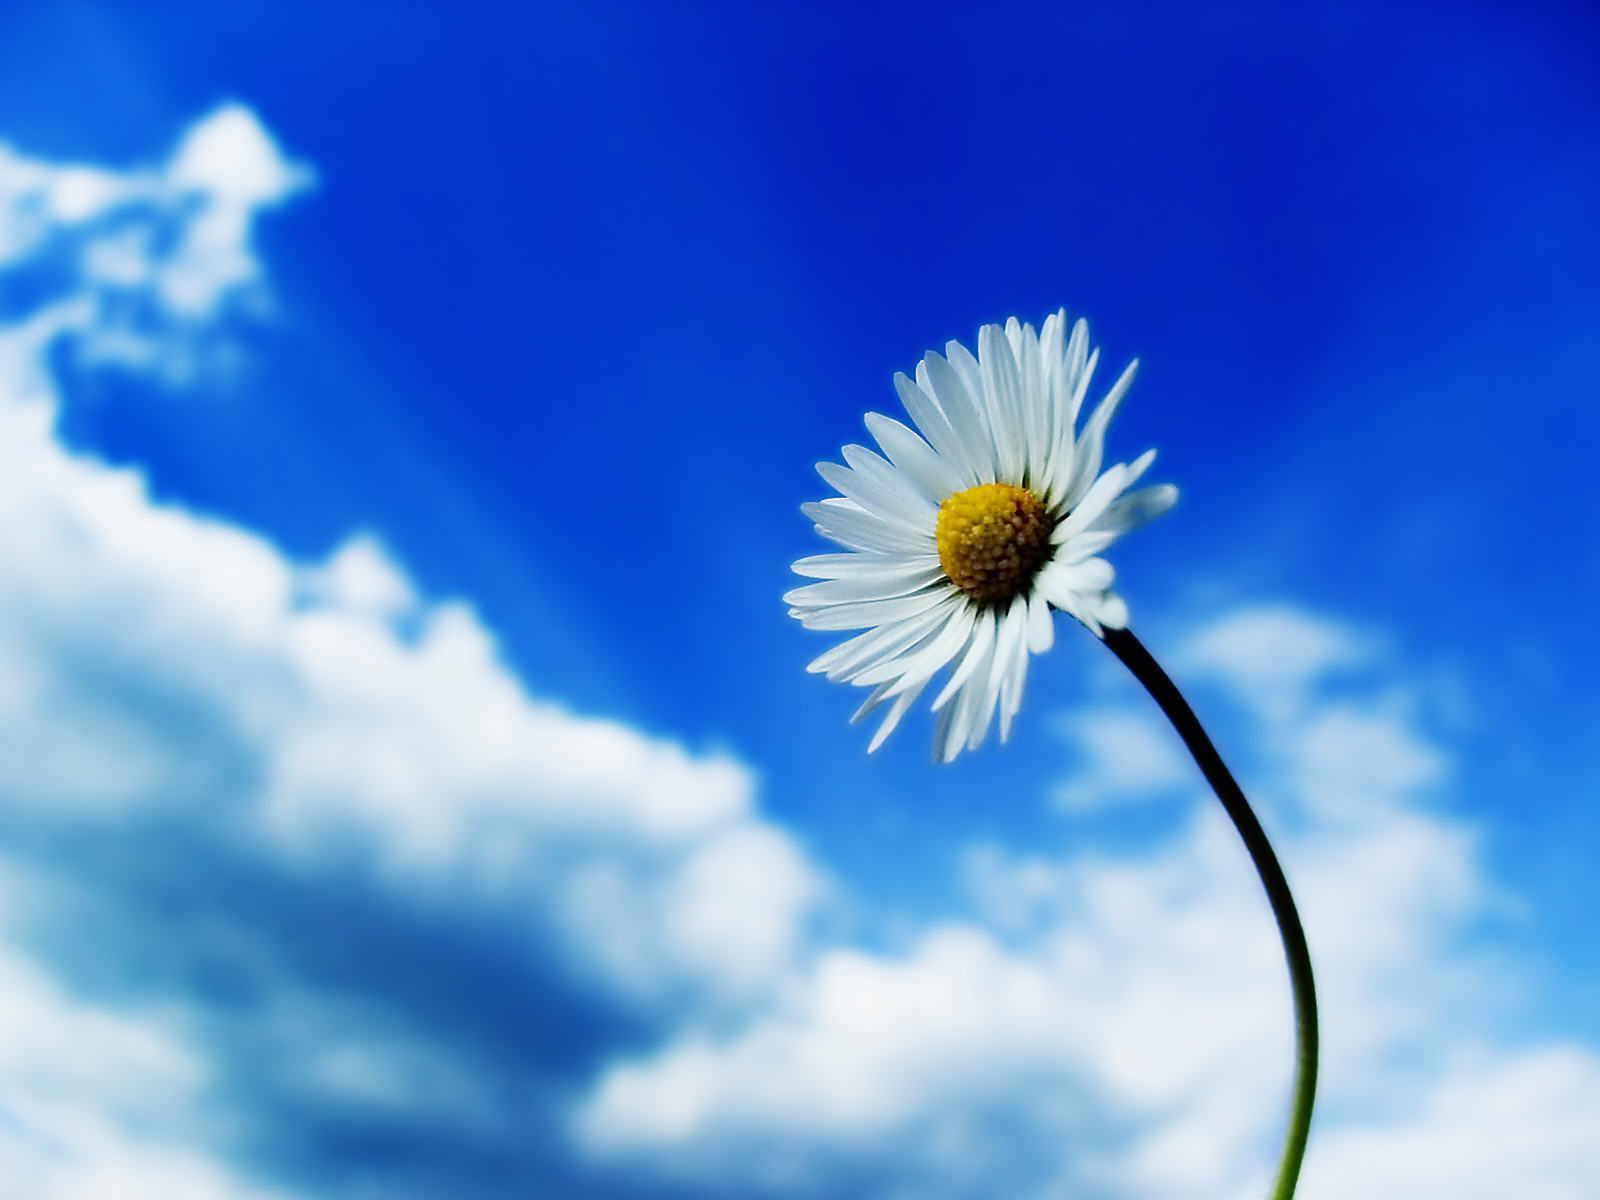 10691 download wallpaper Plants, Flowers, Camomile screensavers and pictures for free